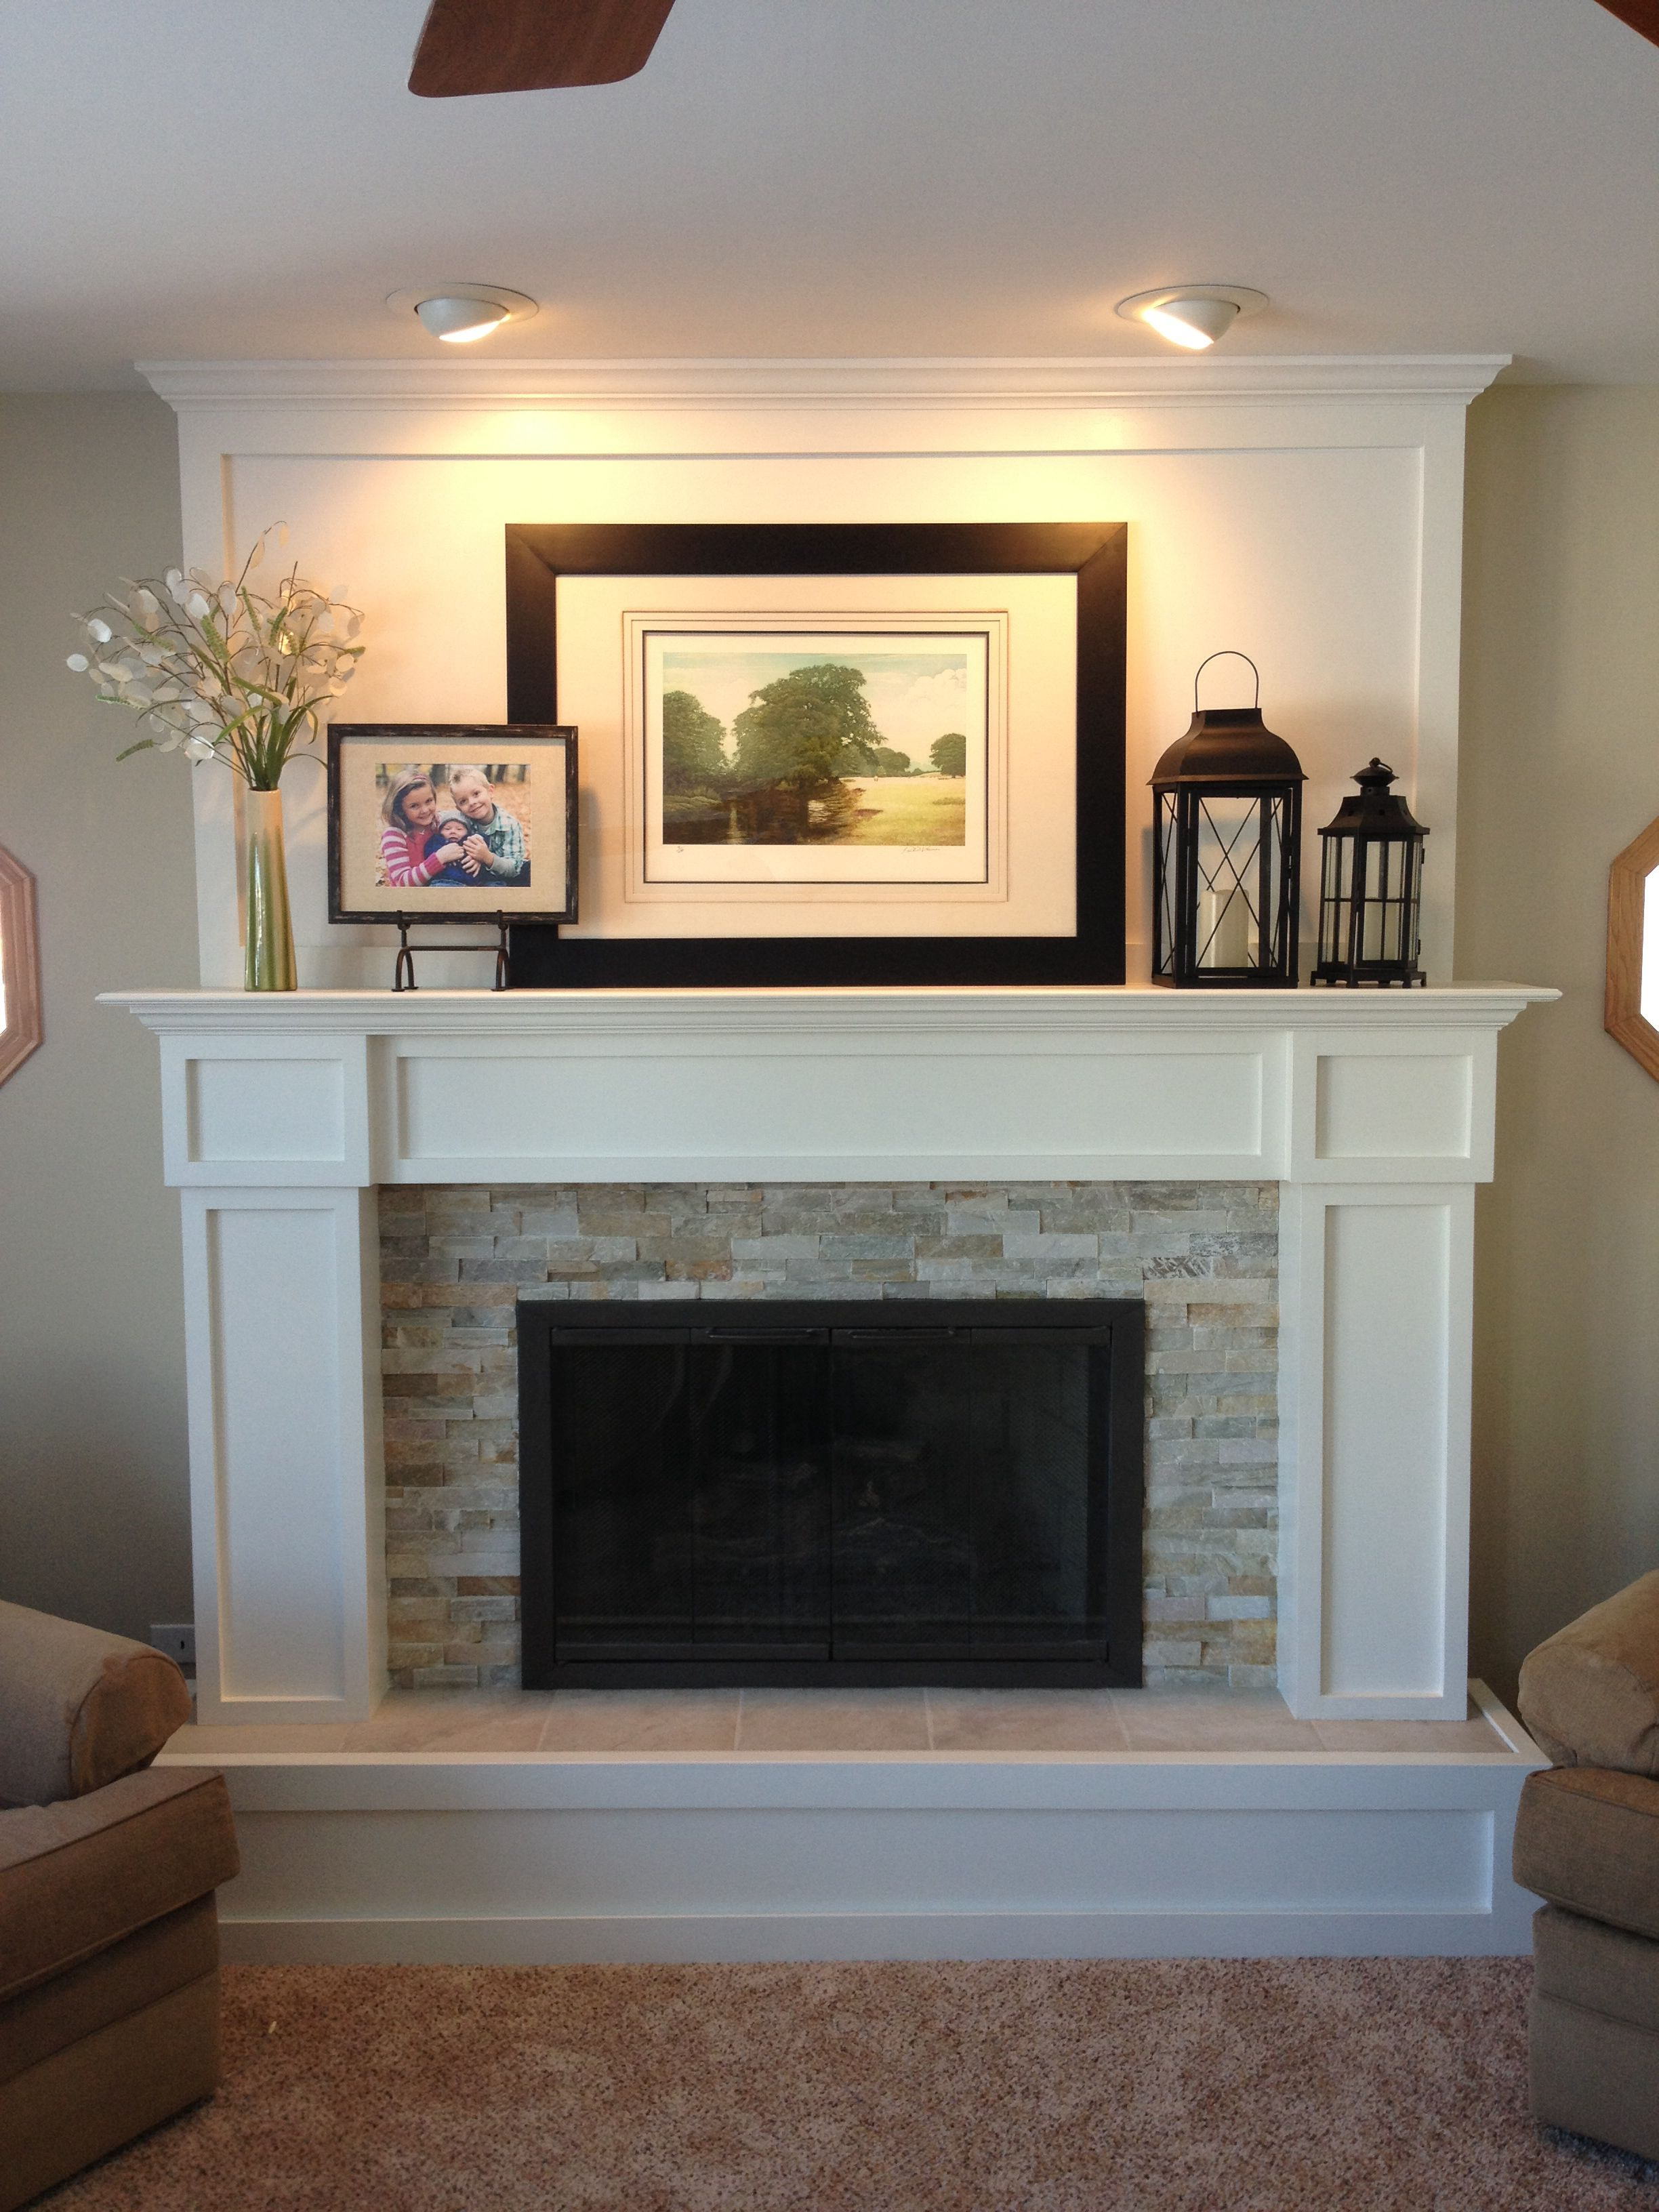 Step 8 Decorate Your New Mantel On Fireplace